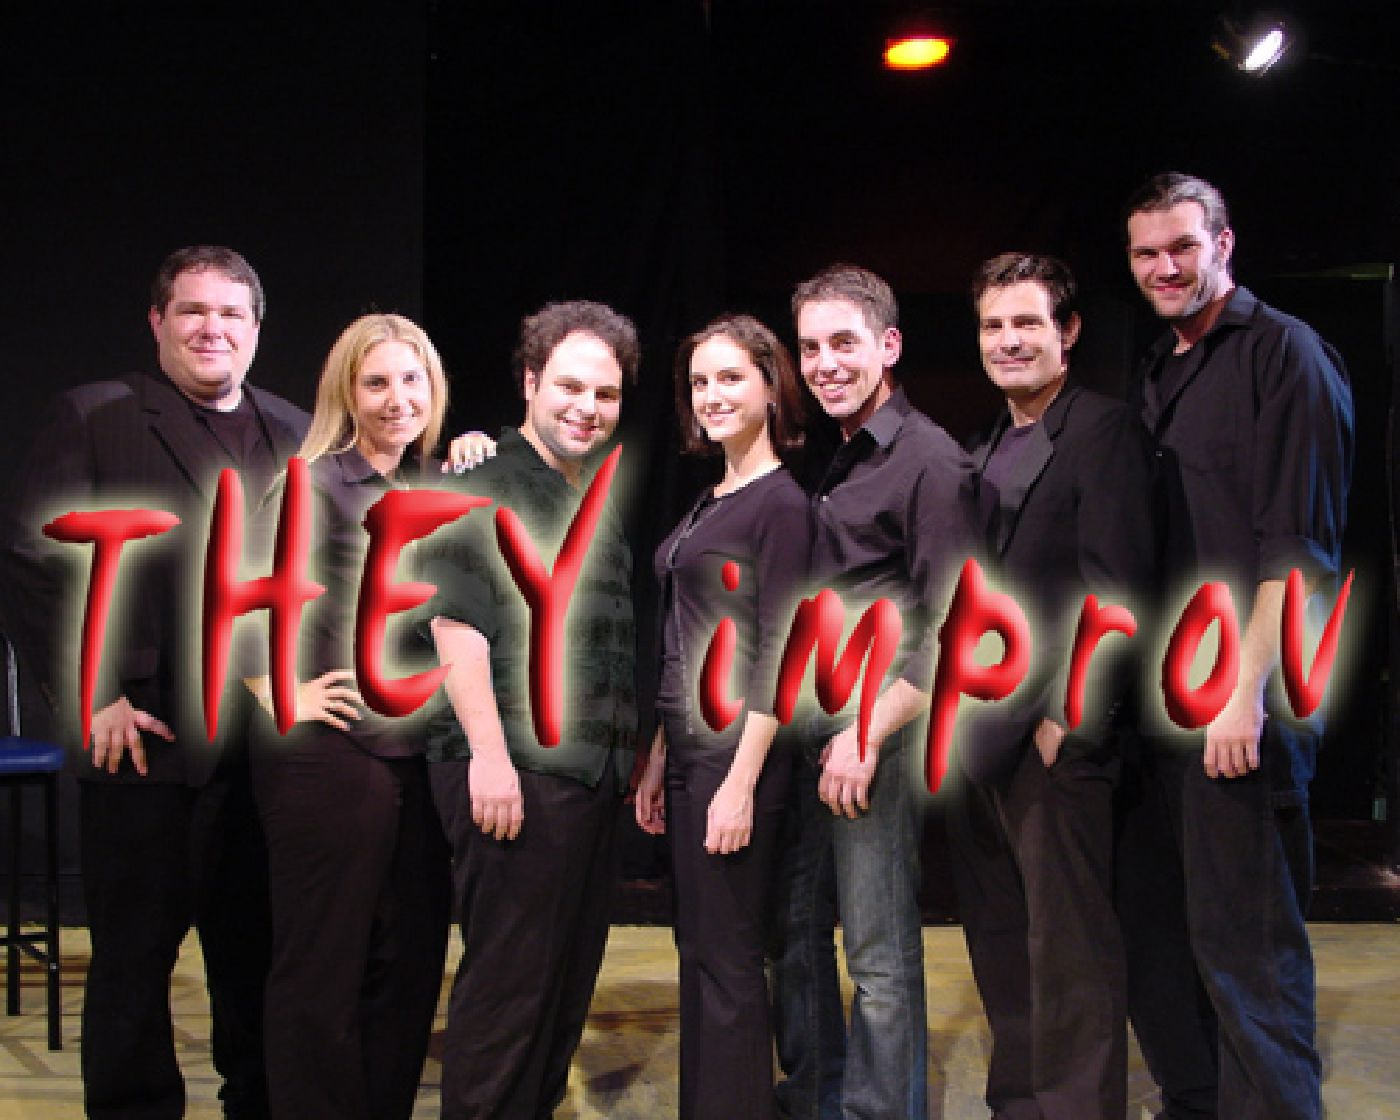 Fort Lauderdale improv show corporate events private parties banquets Broward County